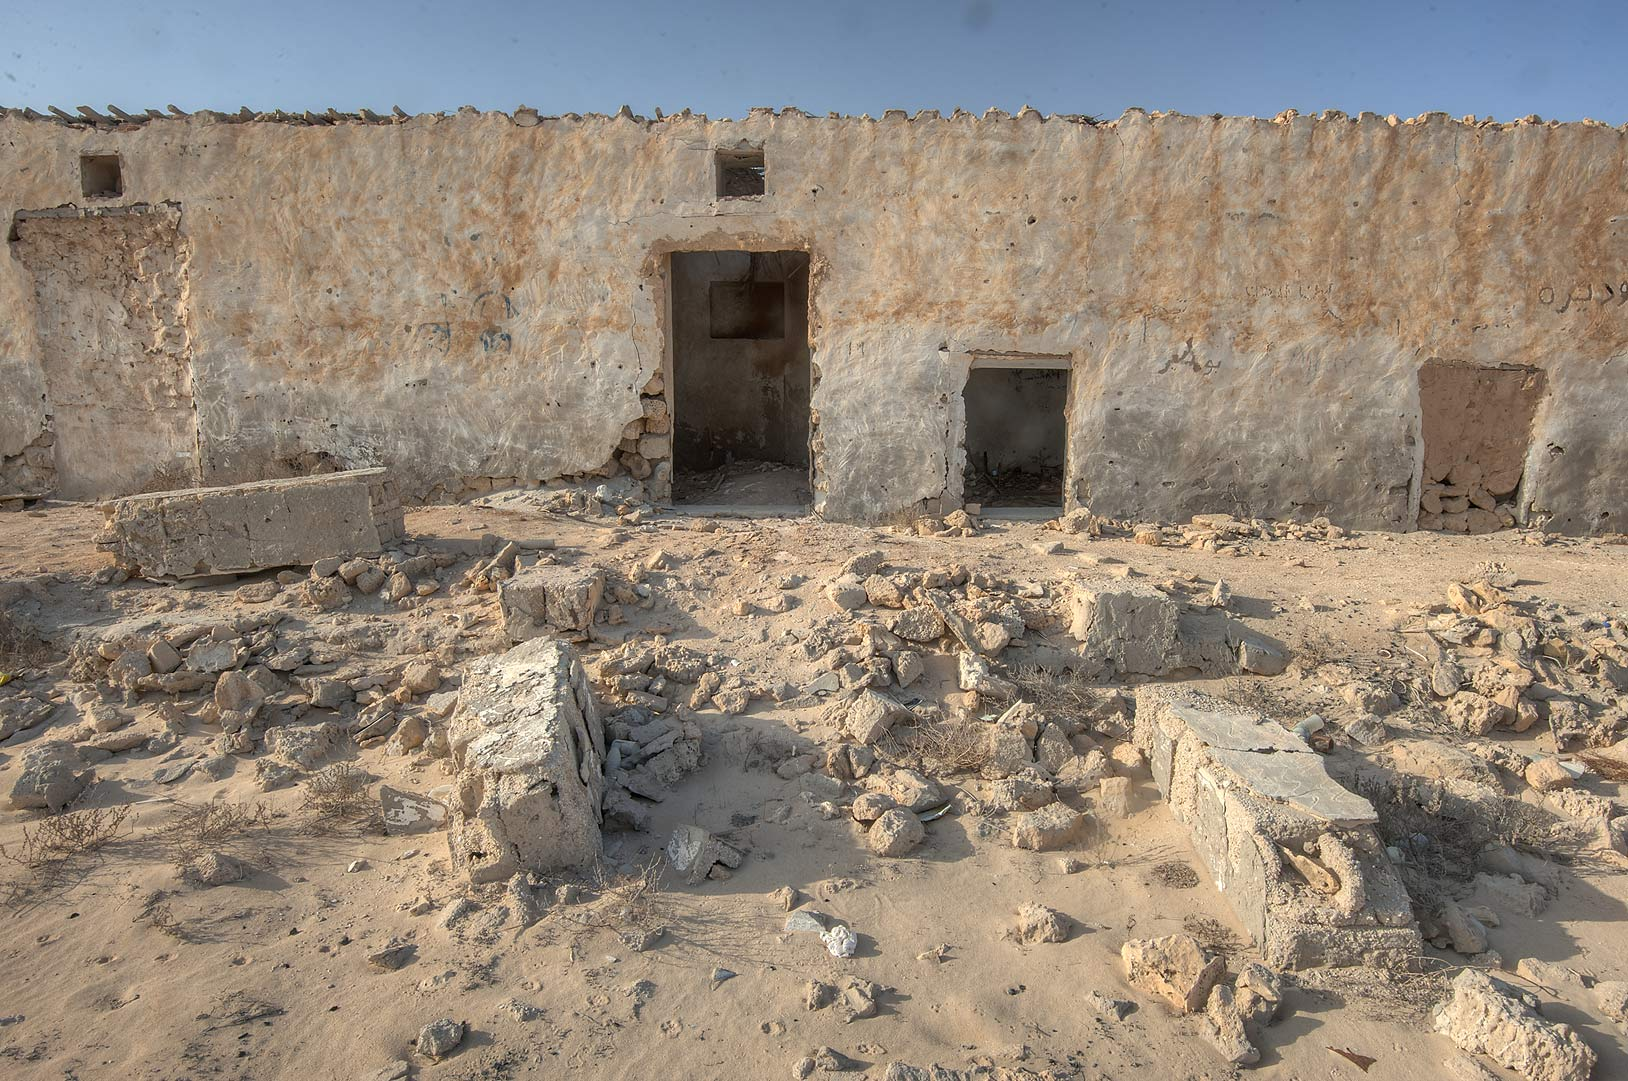 Narrow stone house in northern side in old...eastern coast, Ash Shamal area. Qatar